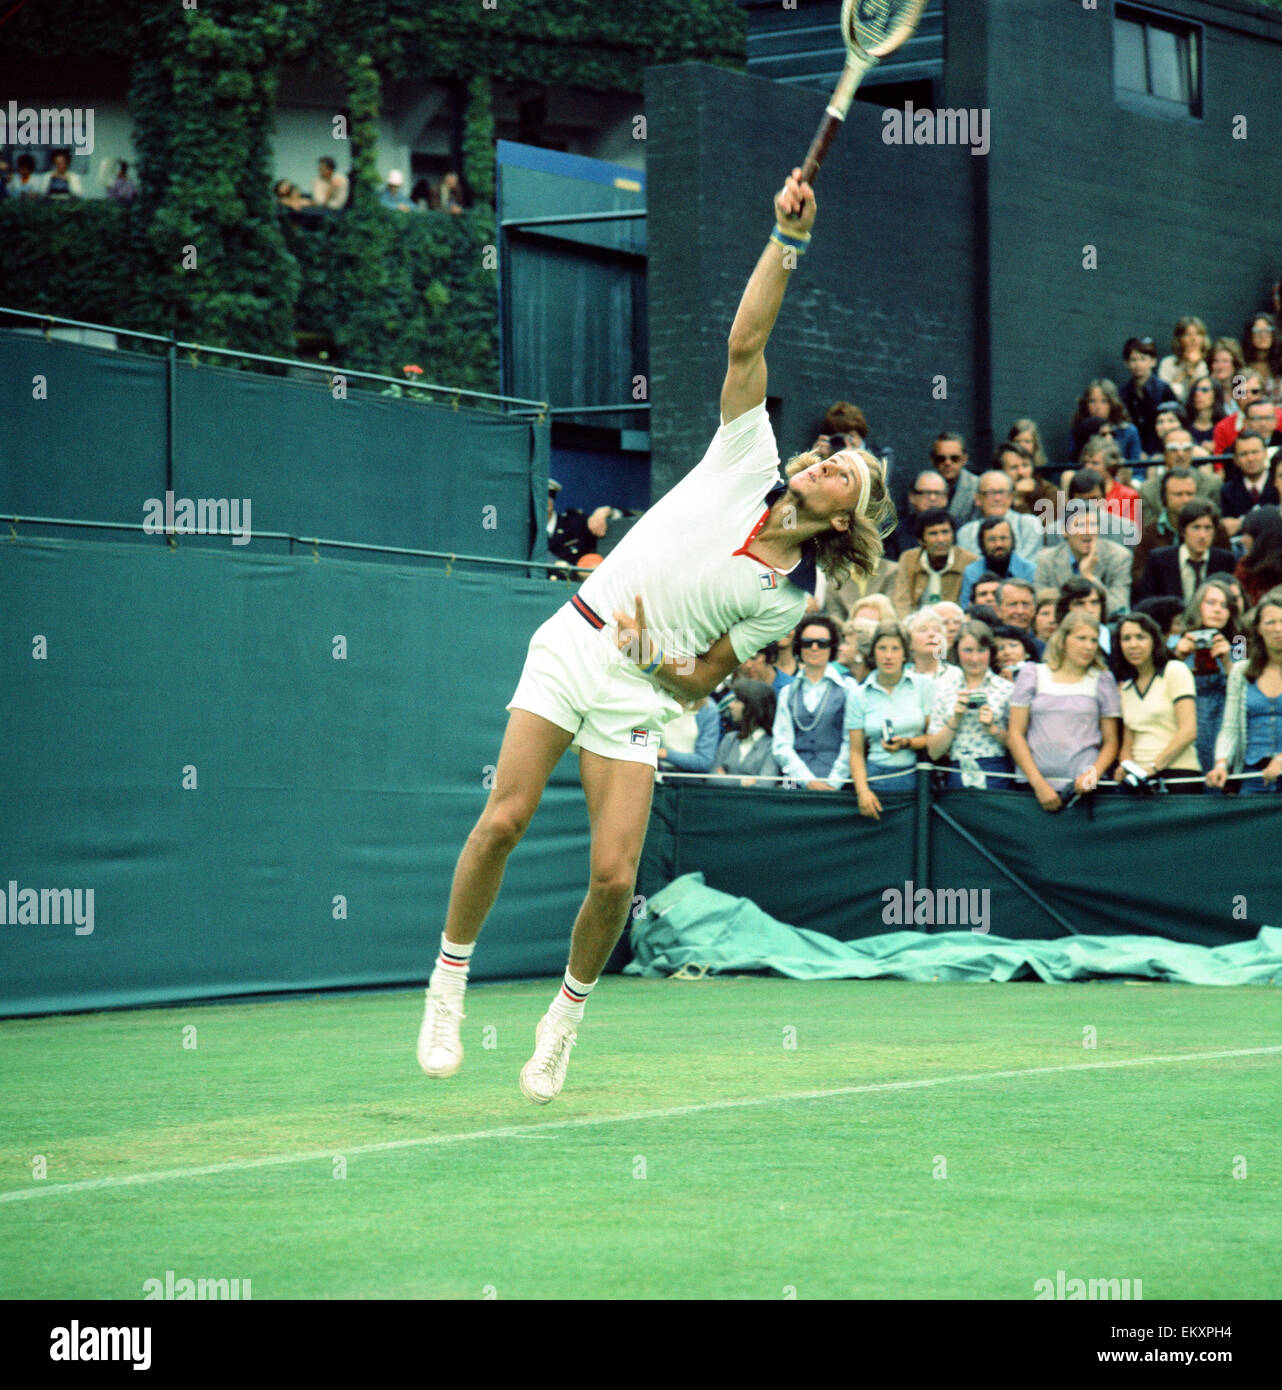 Bjorn Borg 1970s High Resolution Stock Photography and Images - Alamy